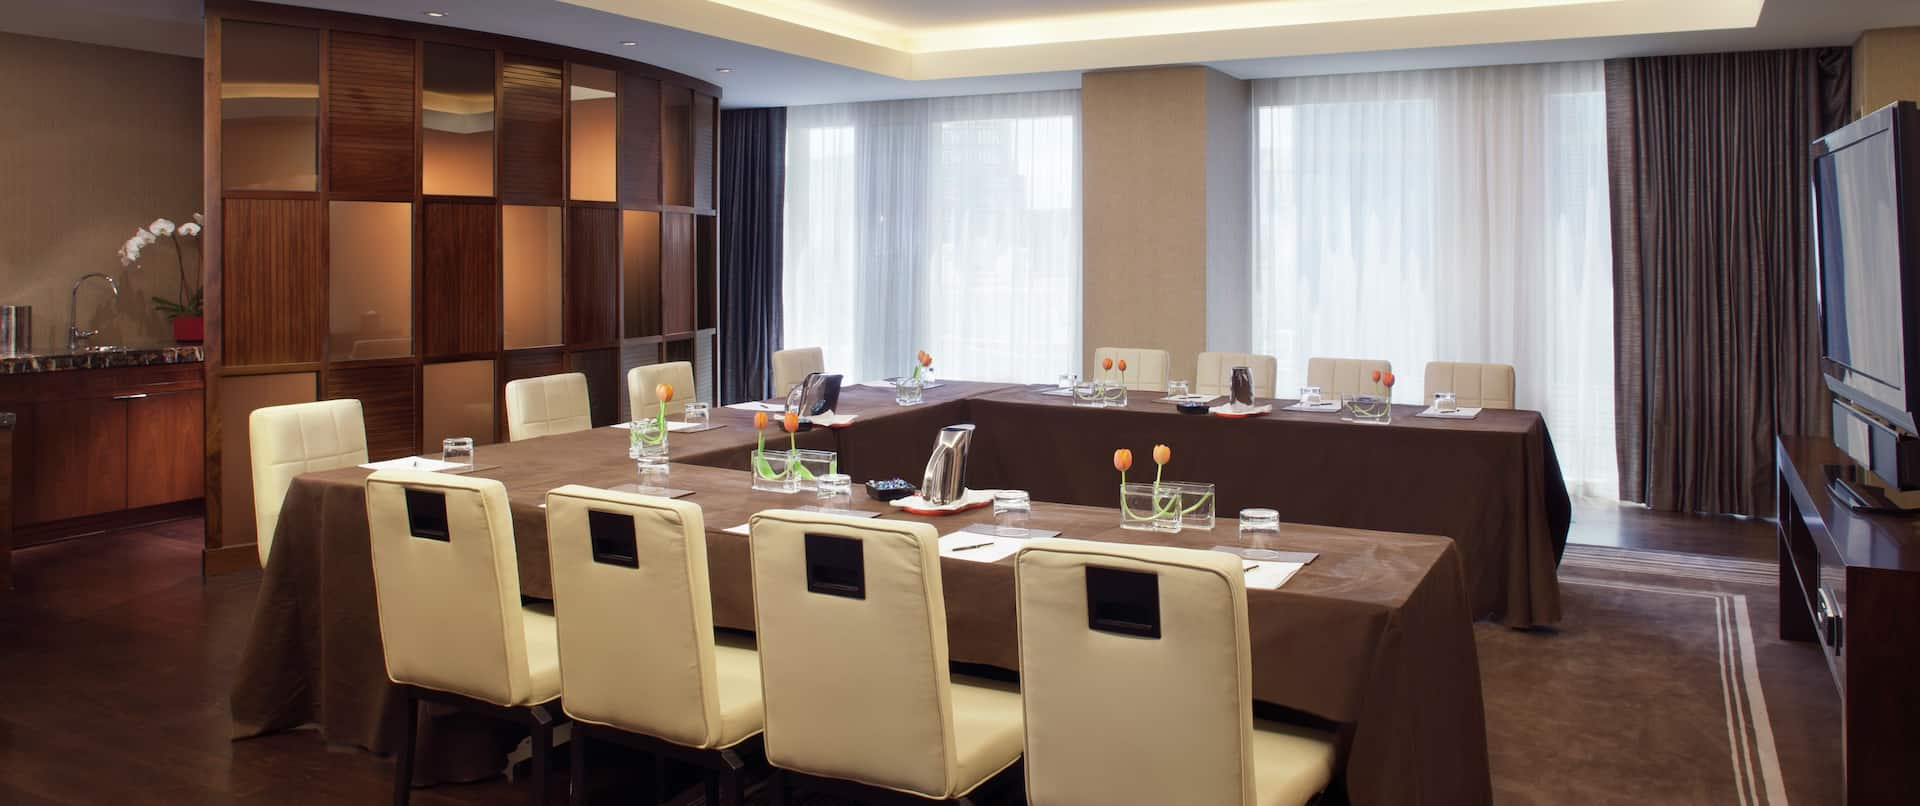 Executive Meeting U Shape with seating for 12